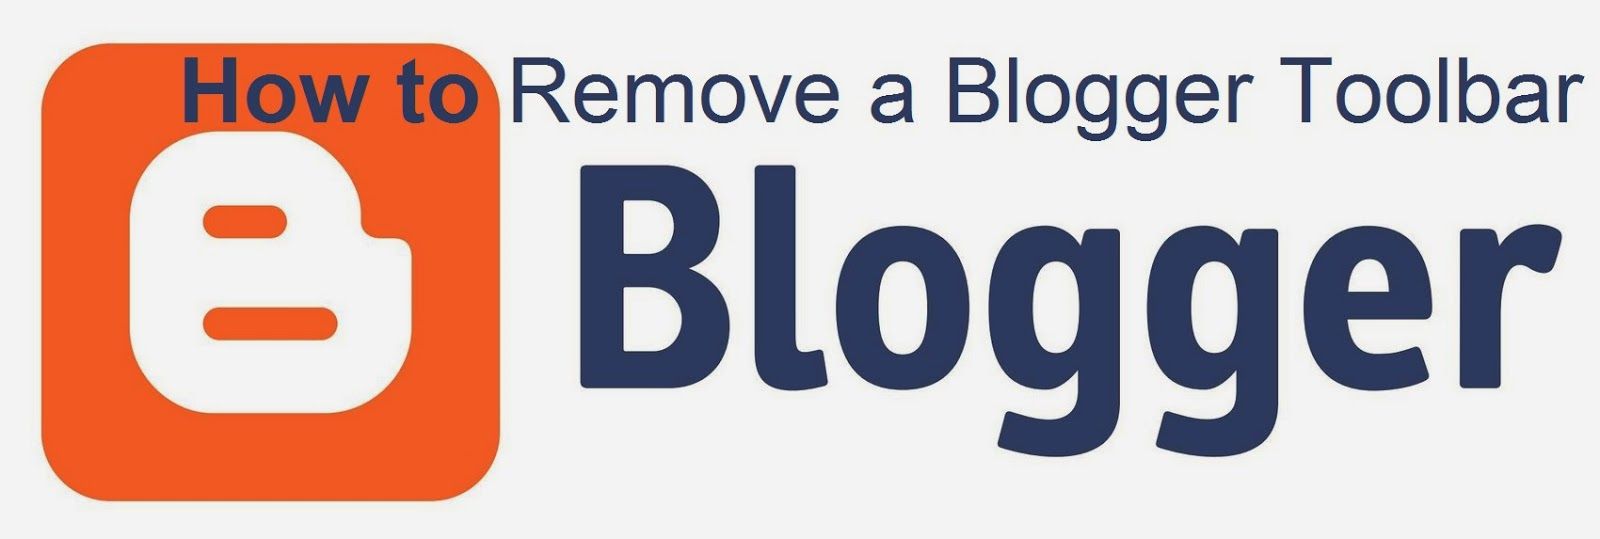 How to Remove a Blogger Toolbar : eAskme